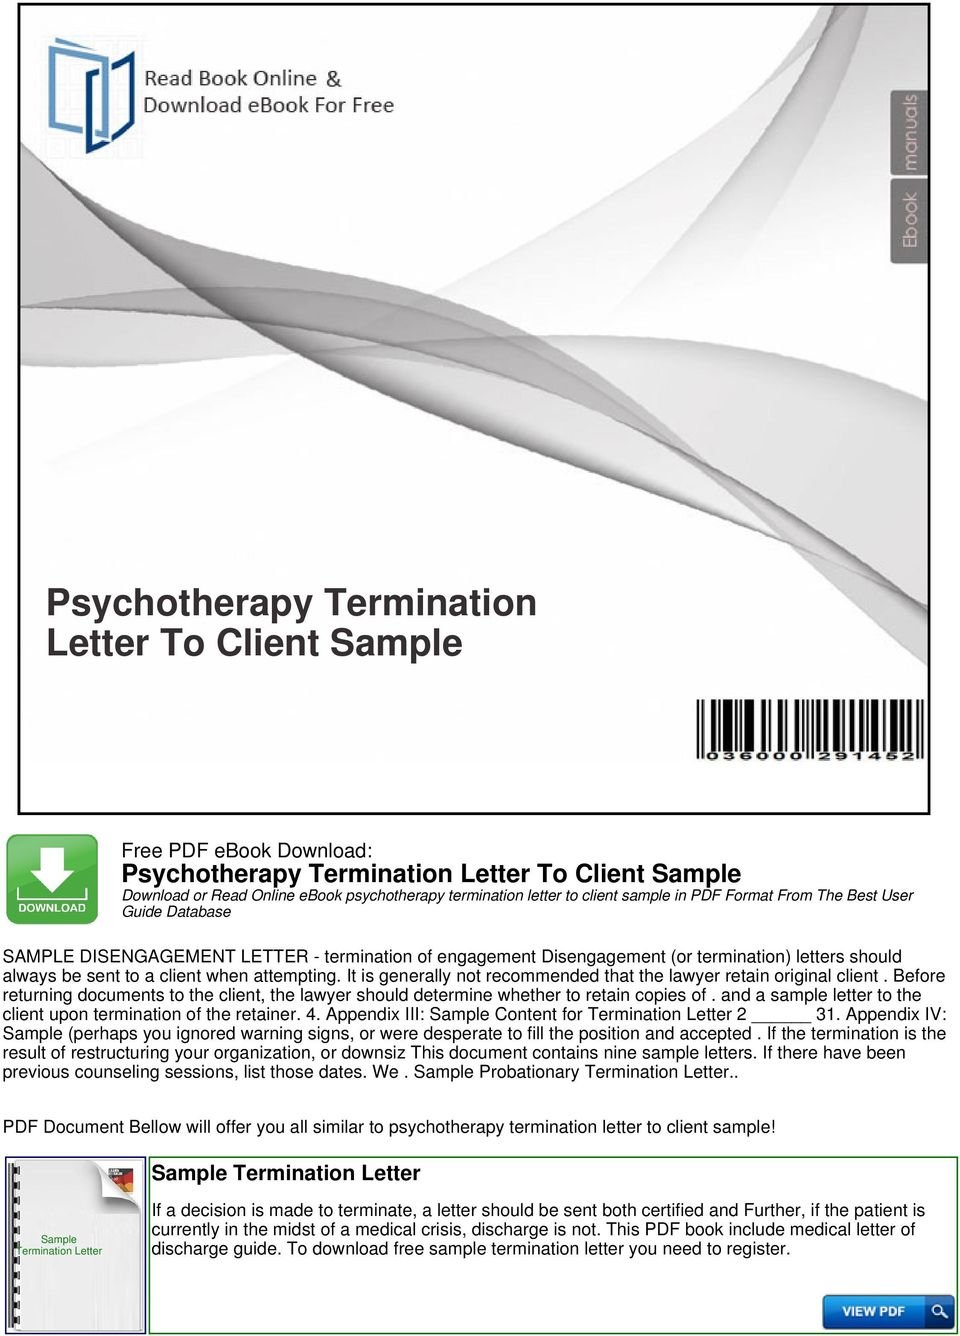 Psychotherapy Termination Letter To Client Sample Pdf Free Download